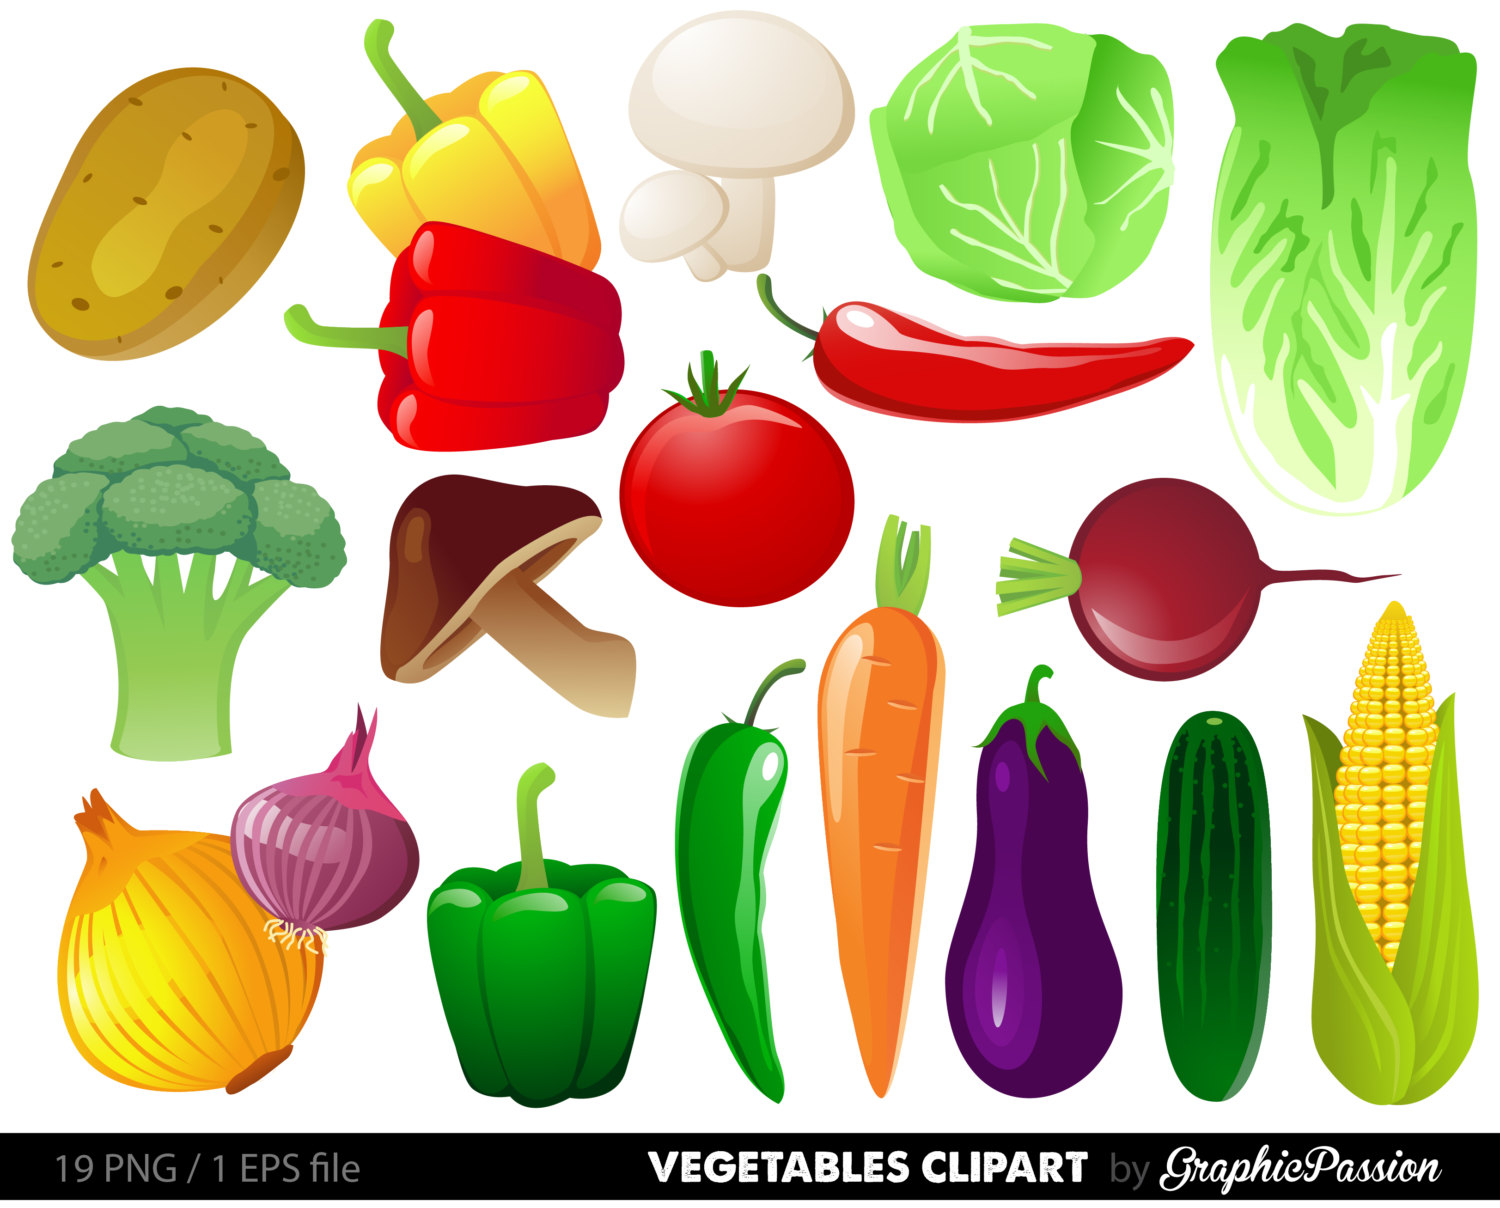 Vegetables clipart digital vegetables clip art vegetable digital illustration Food Clipart Food digital images Vegetables Digital Images